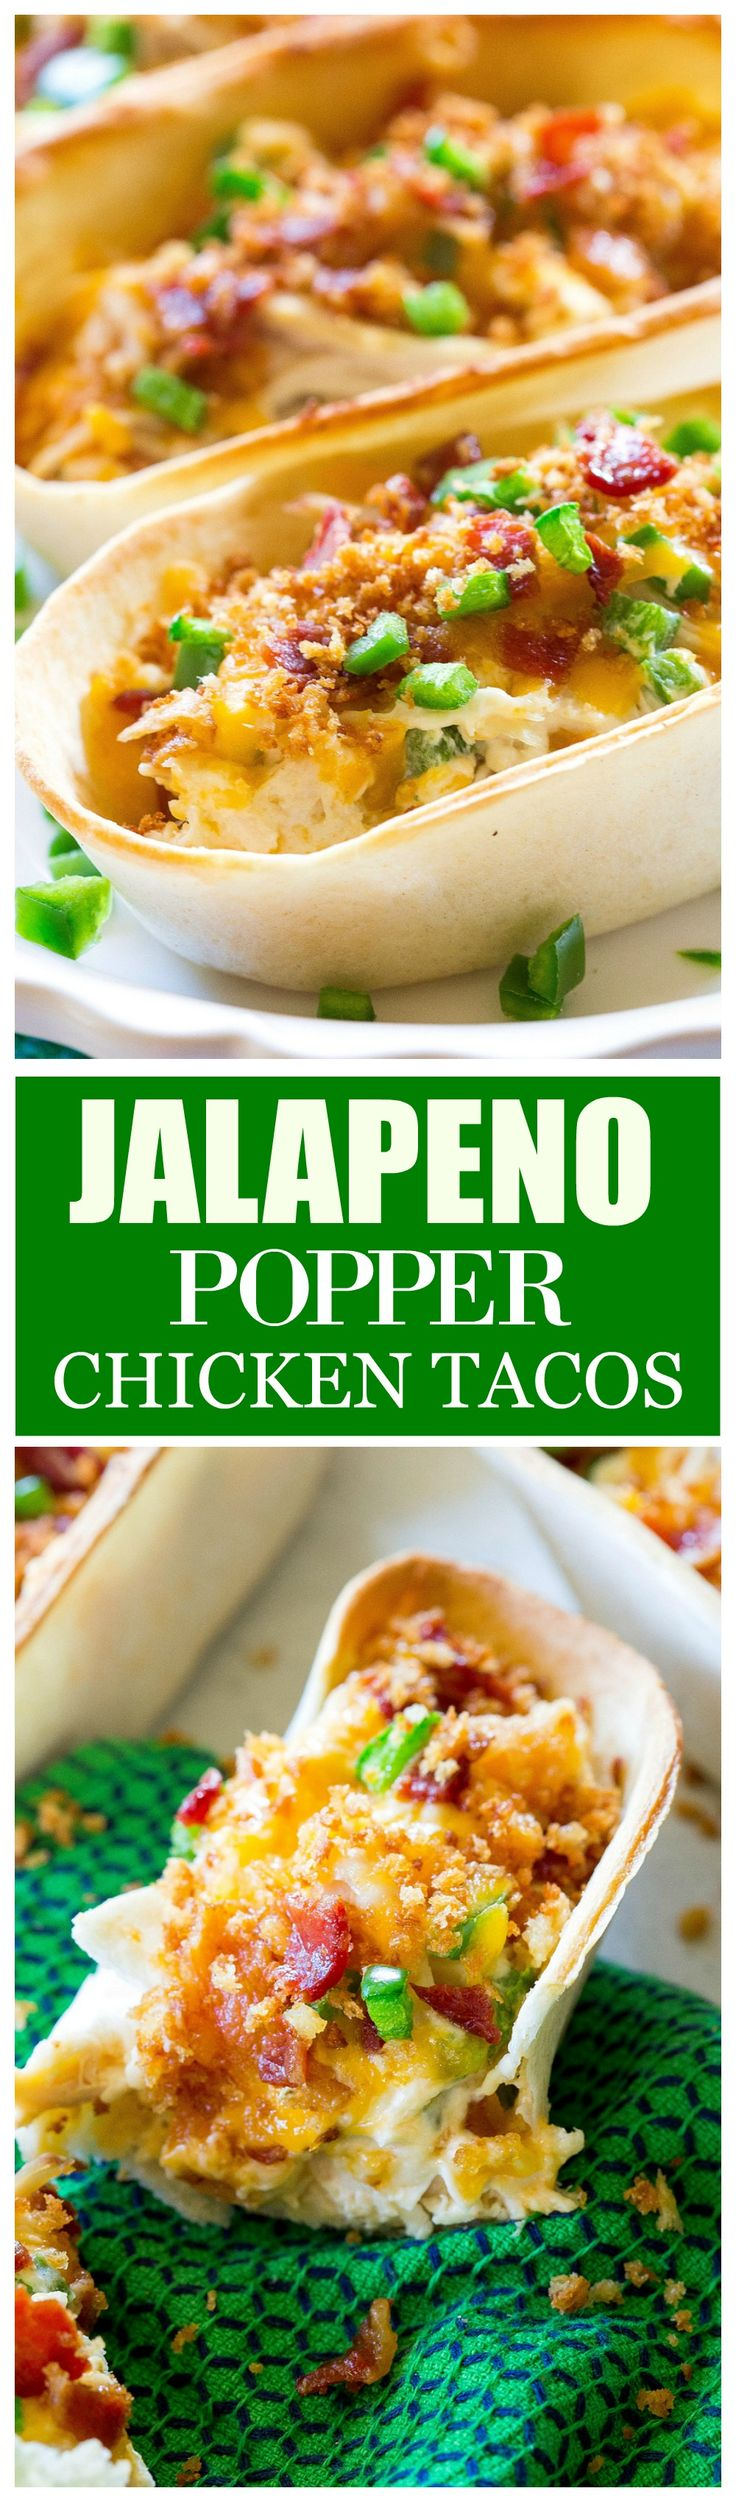 Jalapeno Popper Chicken Tacos - so good! Creamy, a little spicy, and with crunchy Panko topping on top! the-girl-who-ate-everything.com